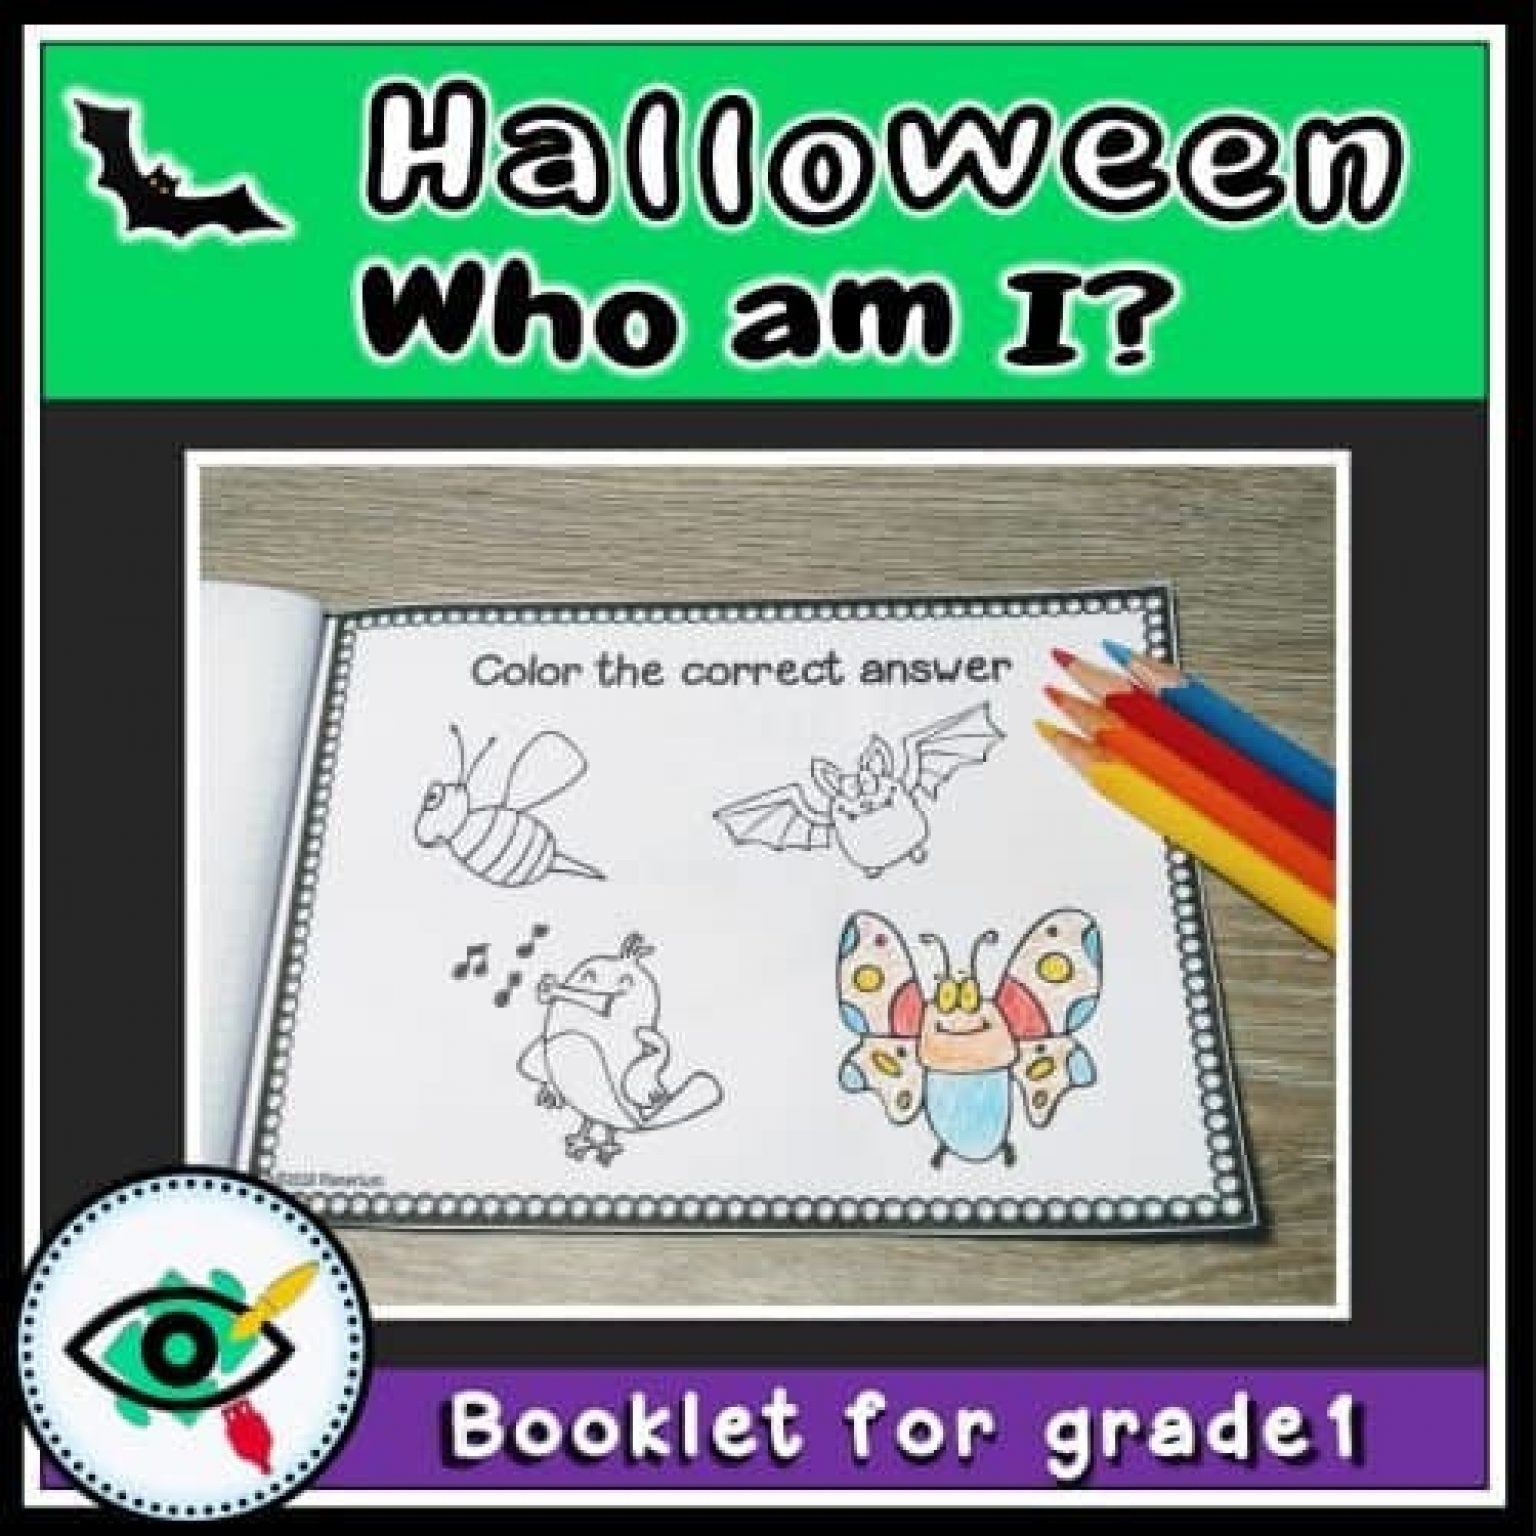 holiday-halloween-who-am-i-booklet-grade1-title2